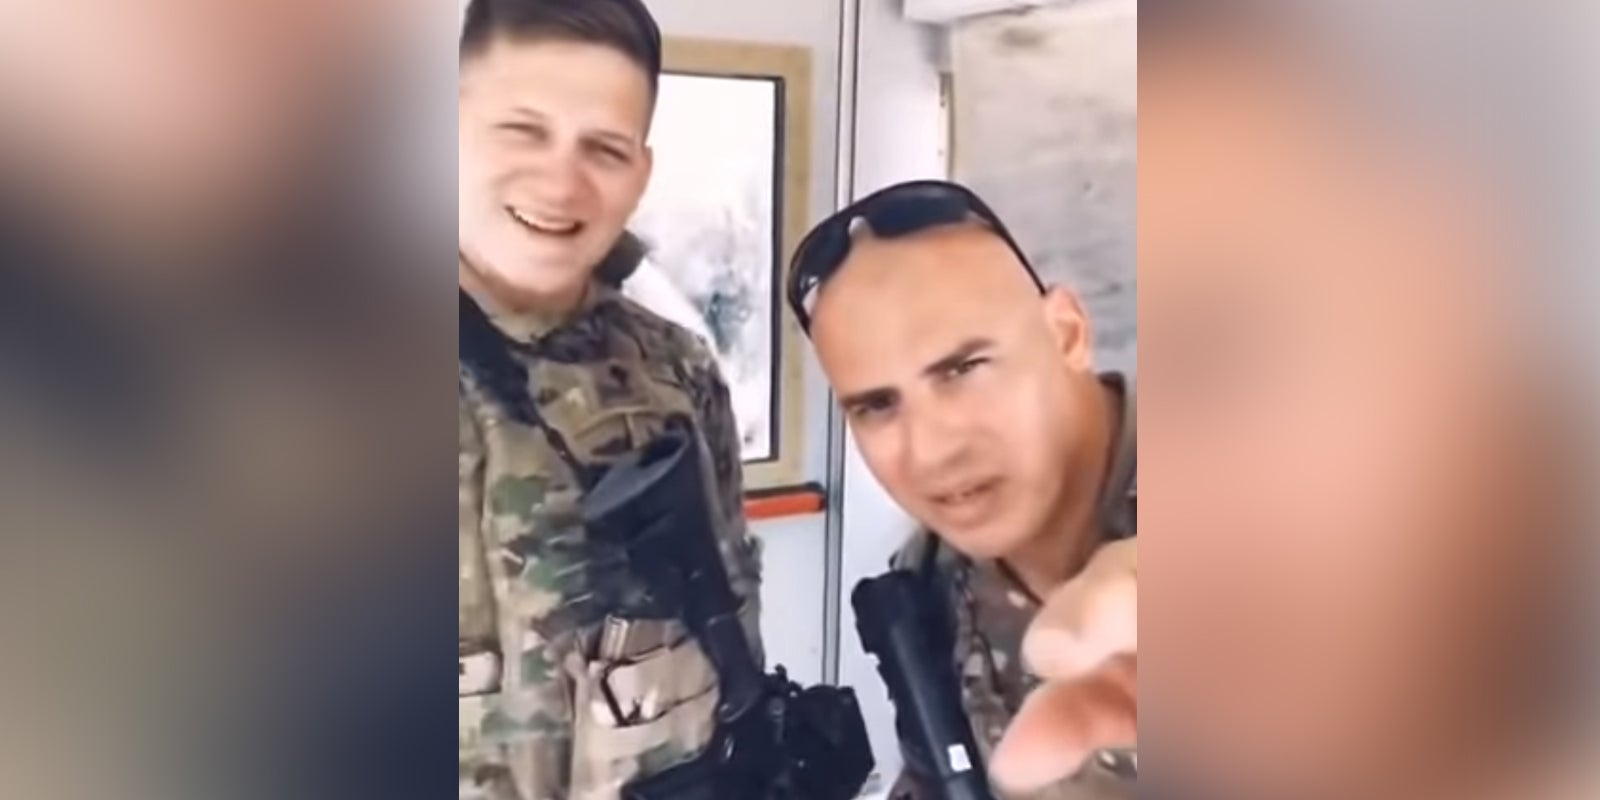 Soldiers who made 'message for liberals' video get message from the Army: You're screwed